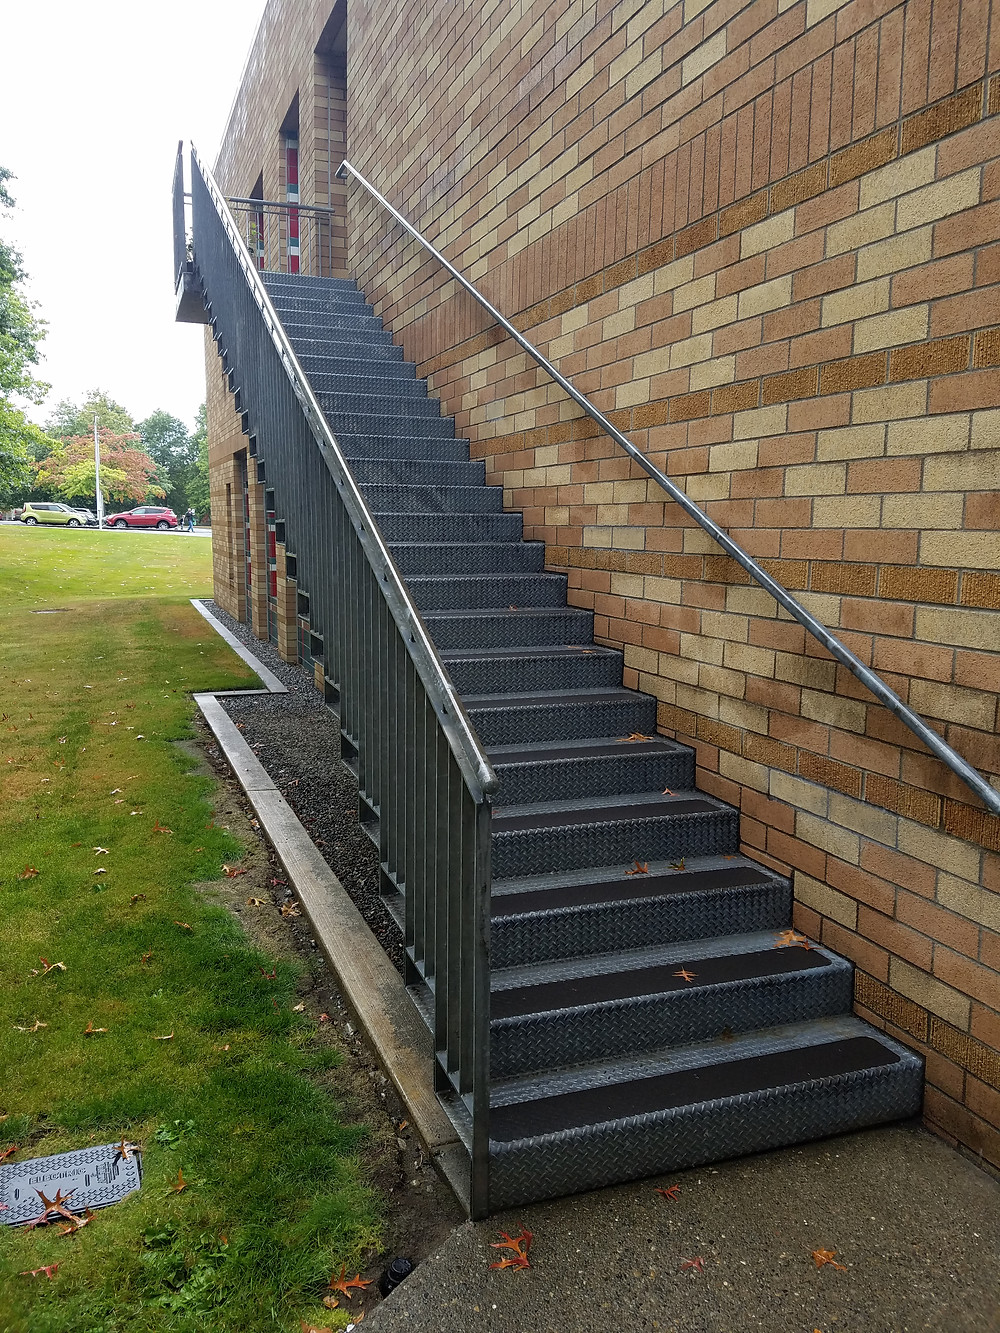 Staircase beside Kaiser Permanente clinic